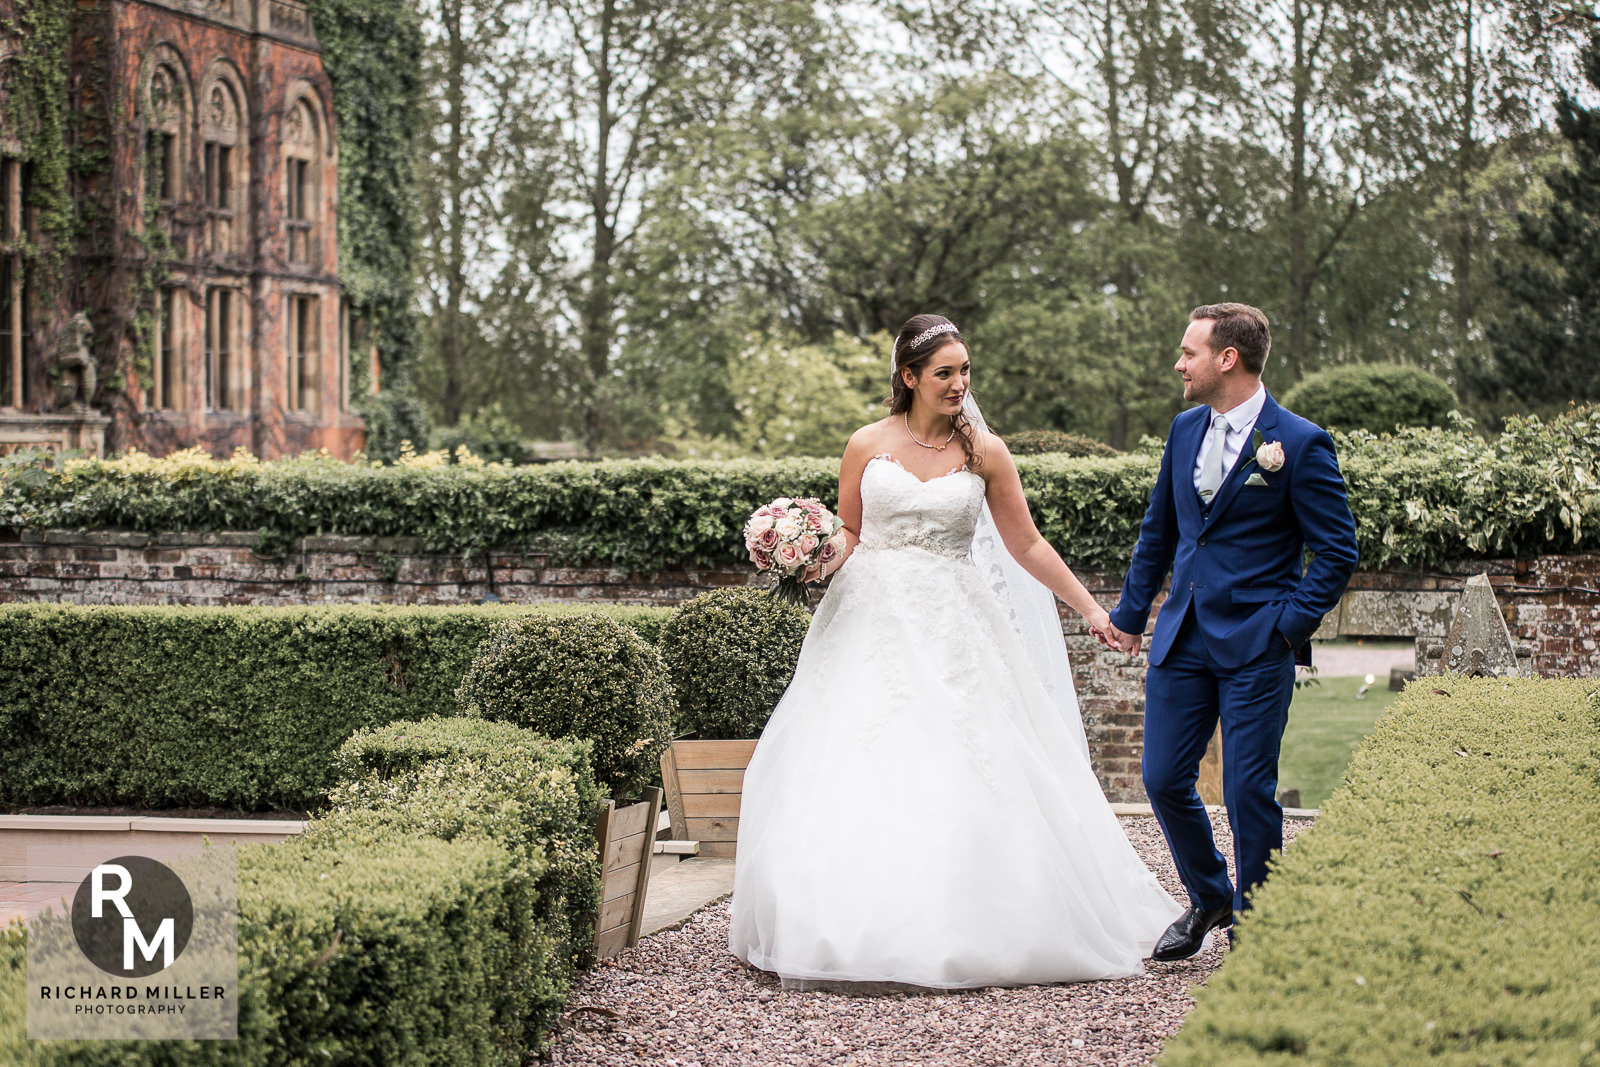 P R 41 - Pete & Roxy's Soughton Hall Outdoor Wedding